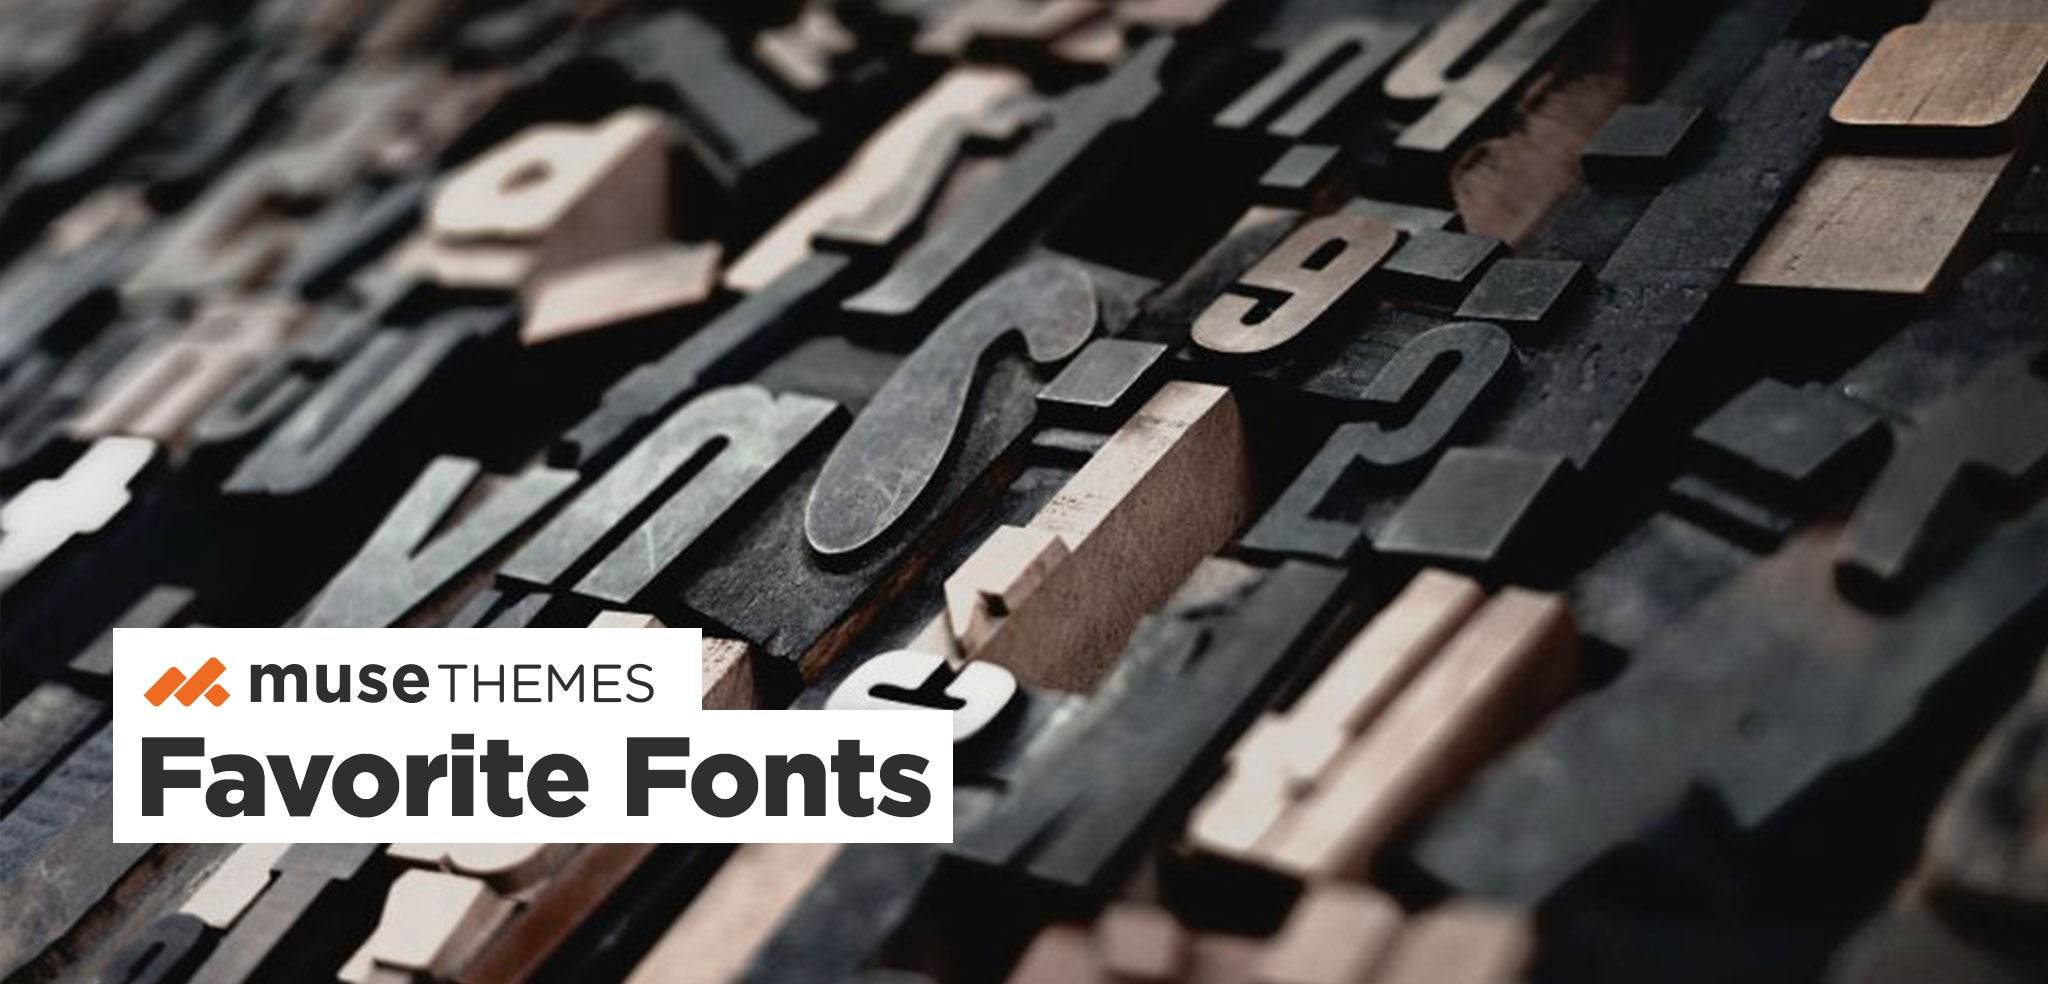 MuseThemes Favorite Fonts